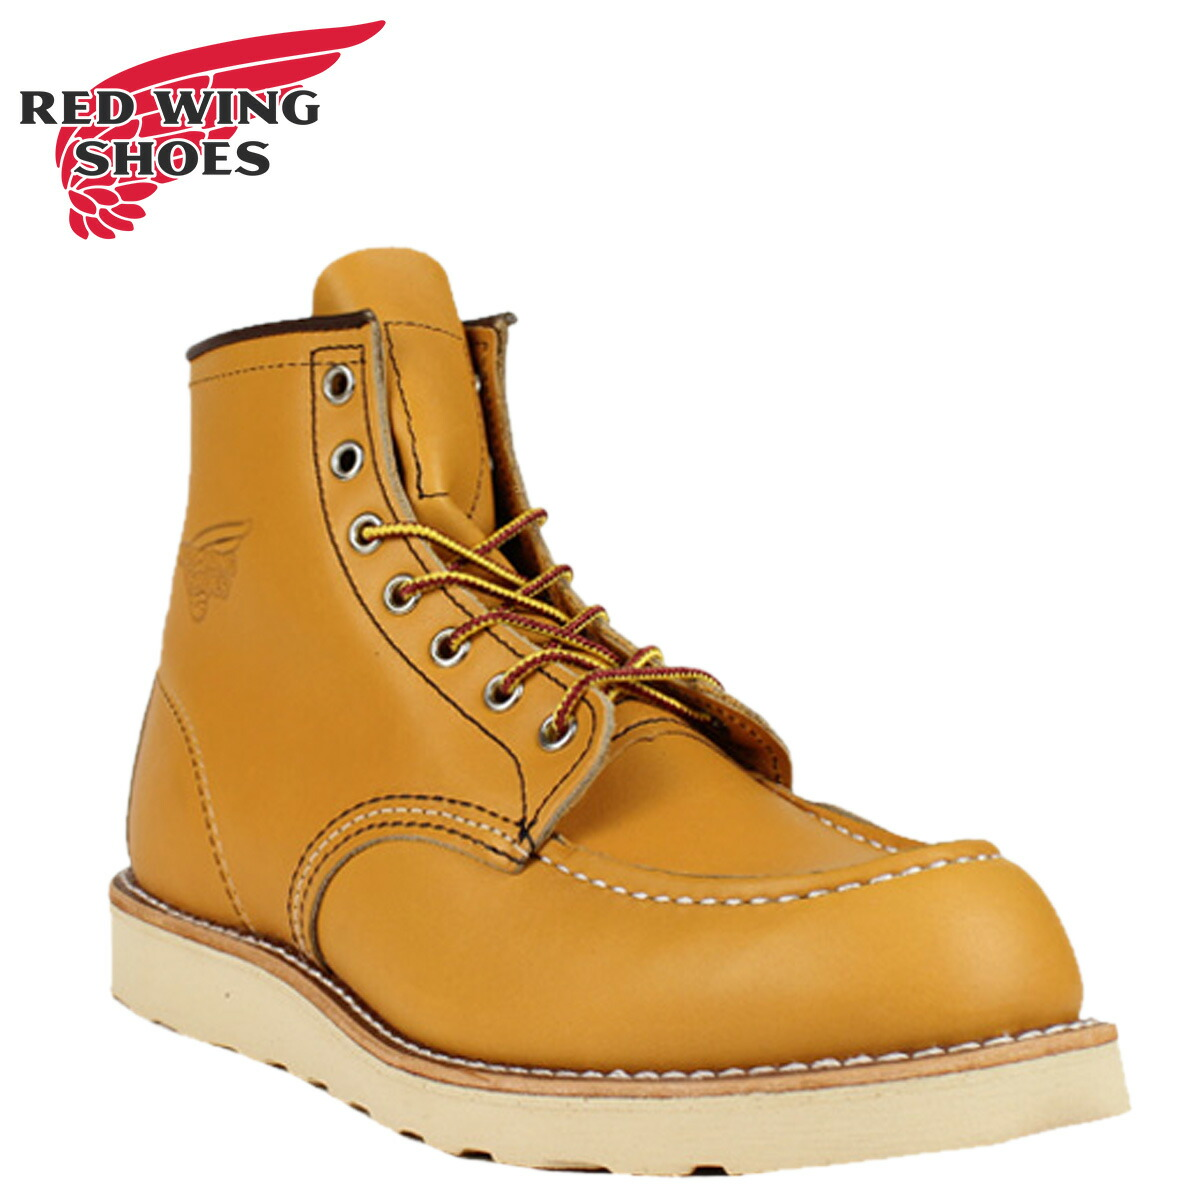 ALLSPORTS | Rakuten Global Market: Redwing RED WING Irish setter ...